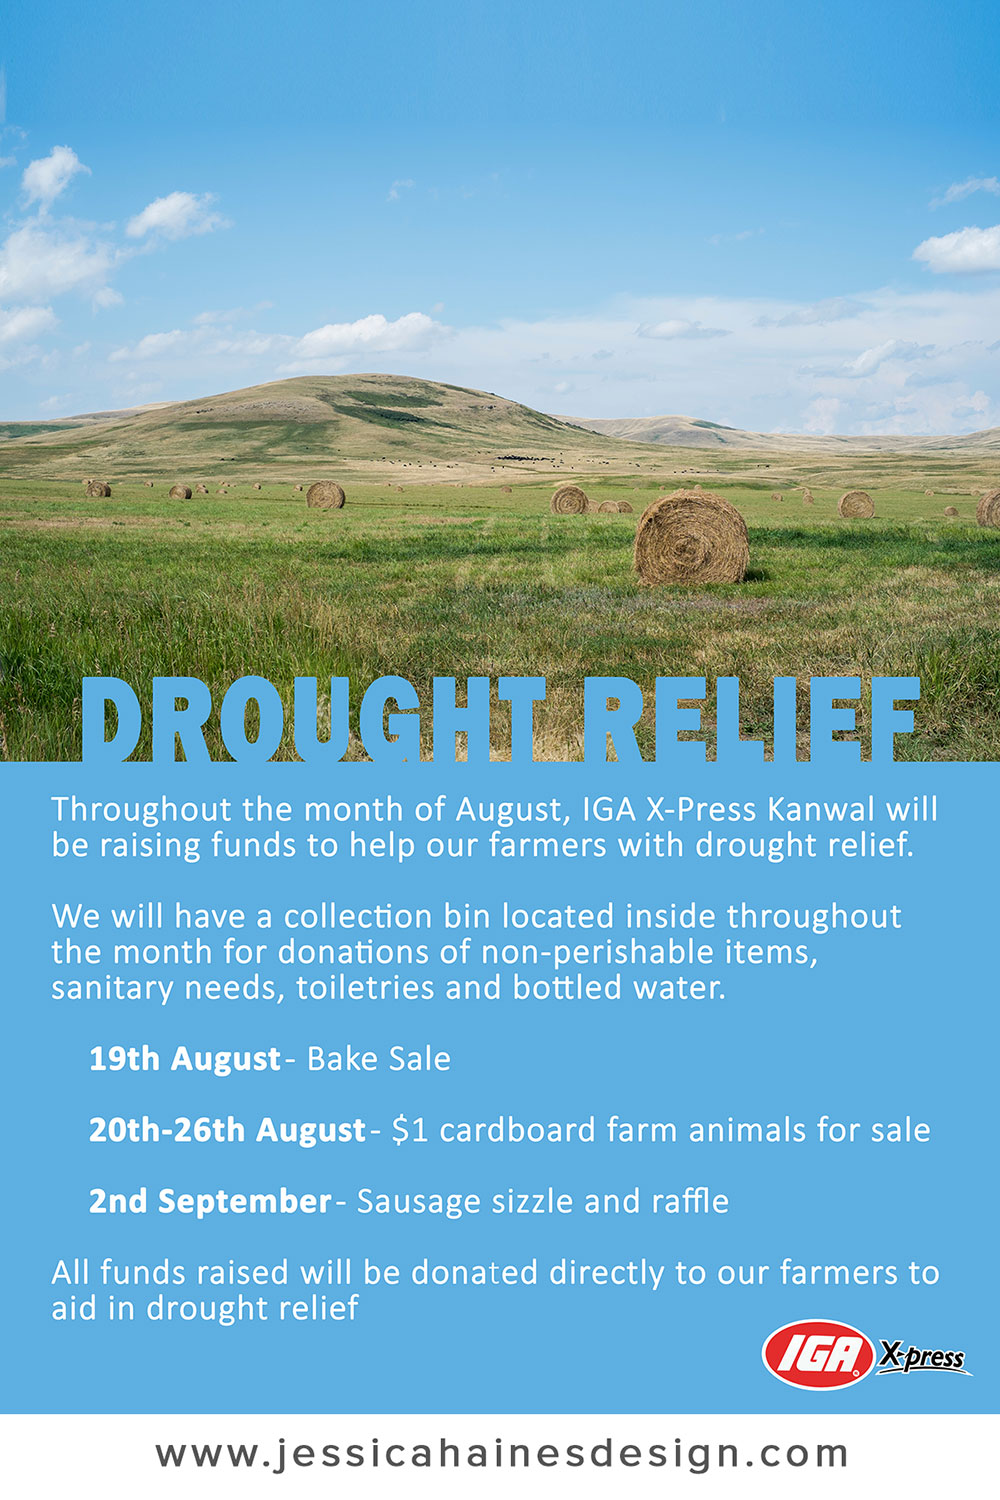 IGA XPress Drought Relief Fundraiser Poster